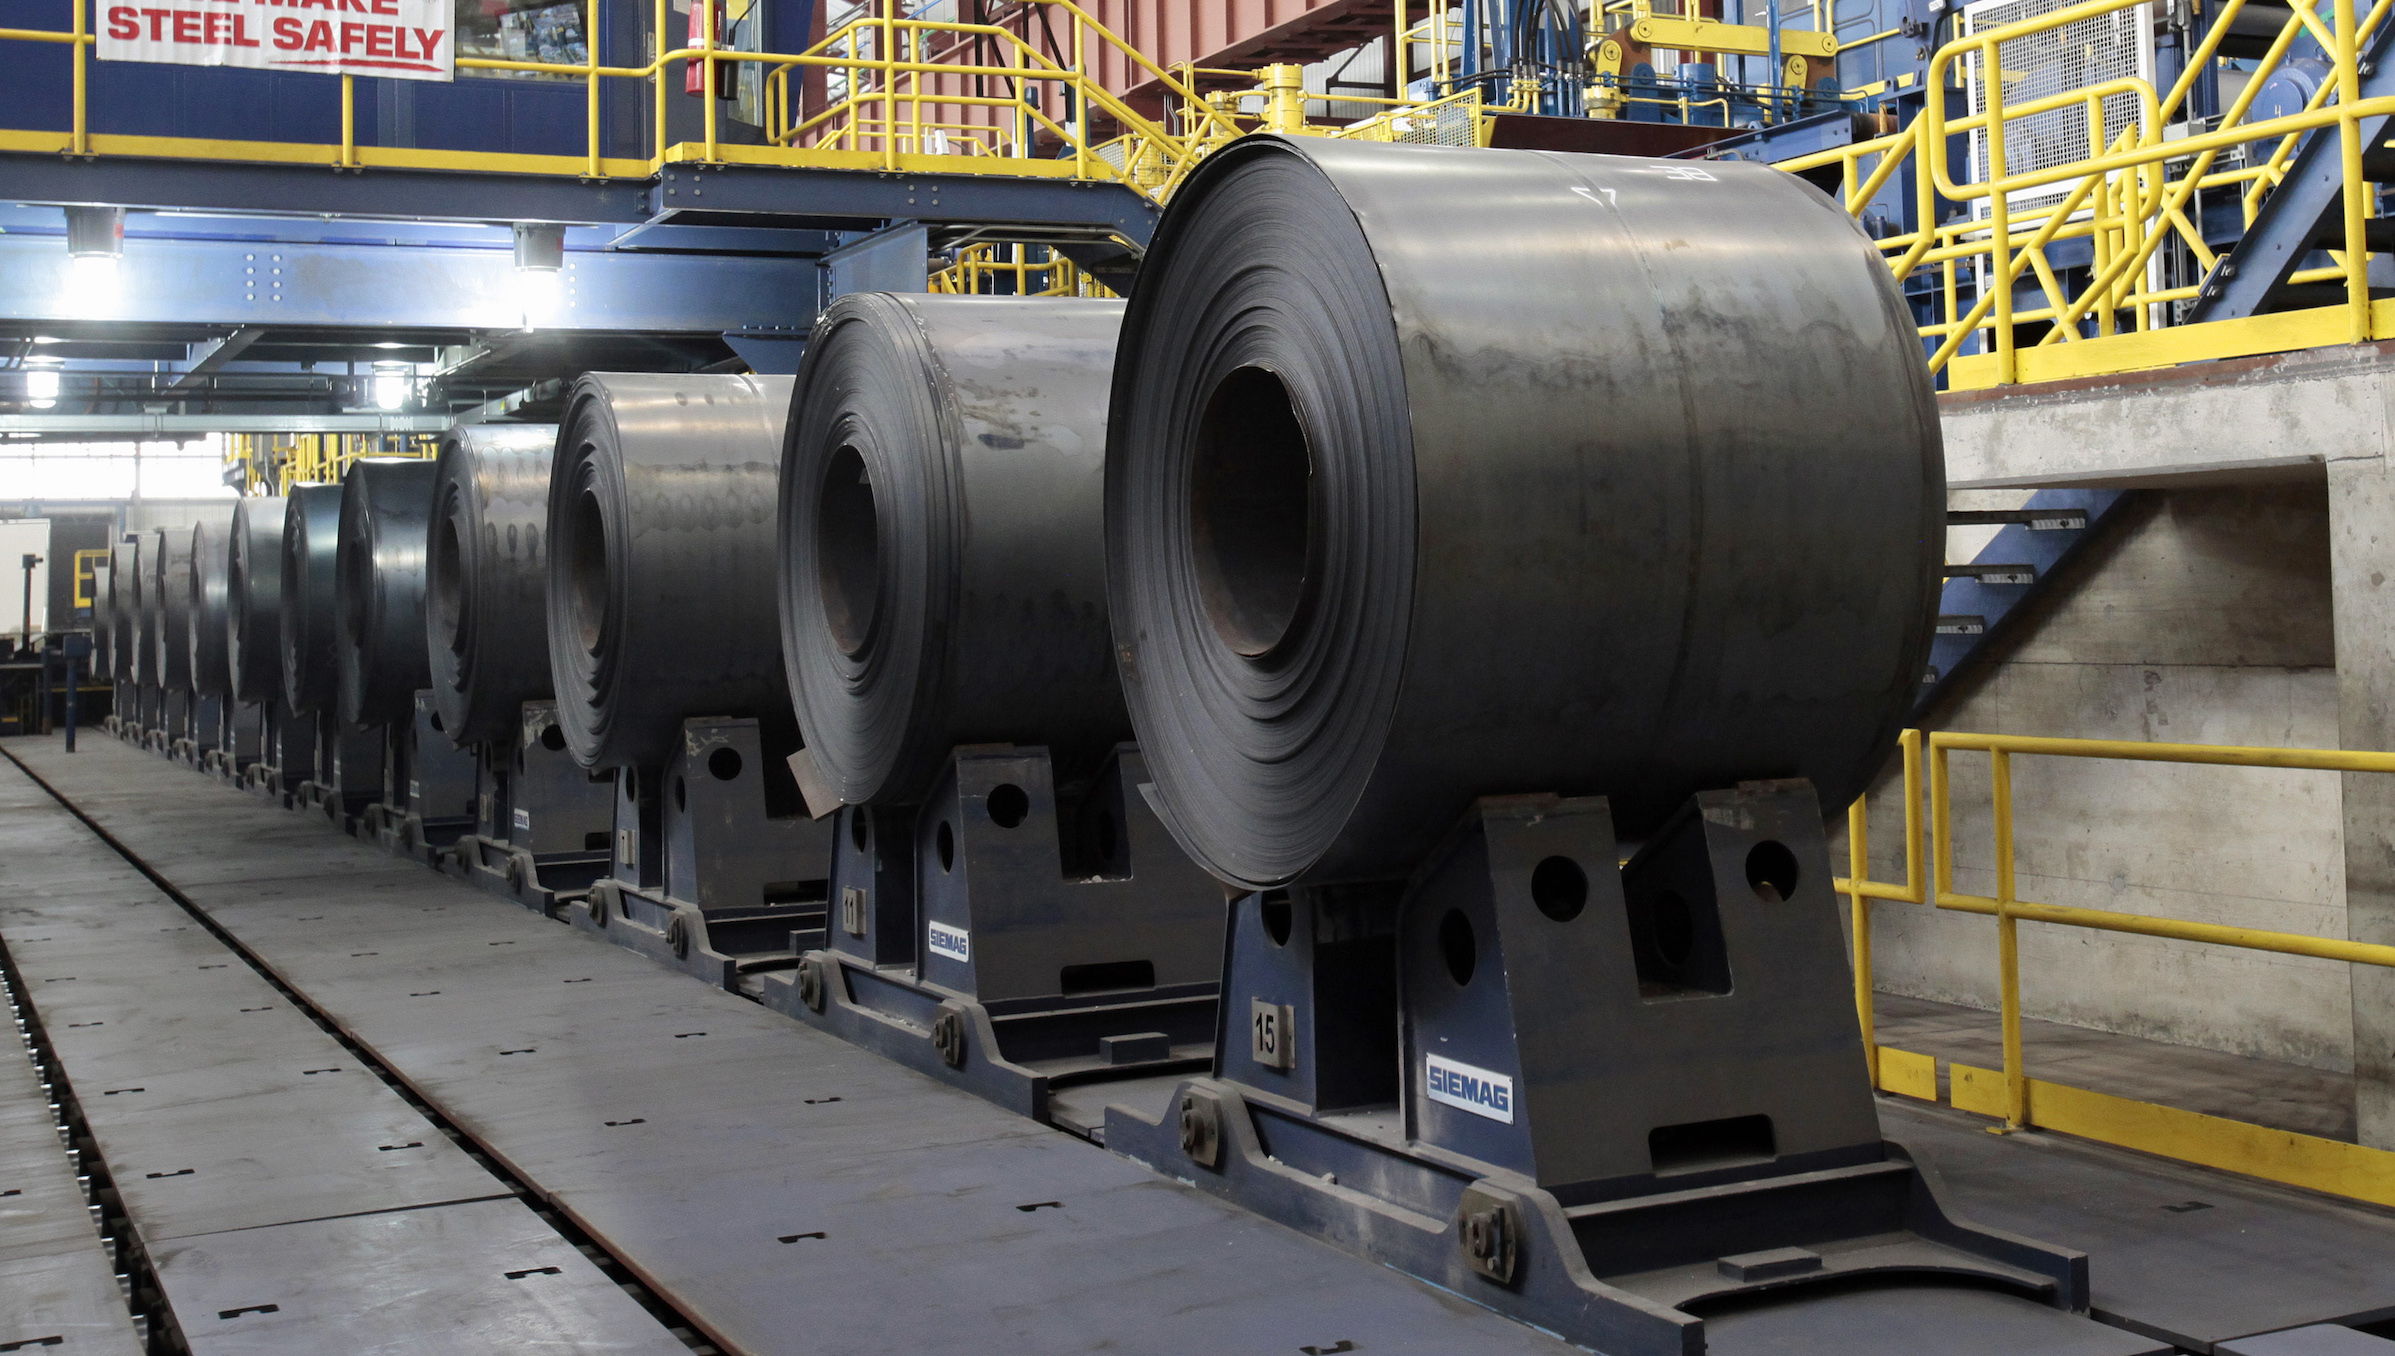 Rolled steel is seen after being treated on the pickle line at the Severstal steel mill in Dearborn, Michigan June 21, 2012. Russian steel company Severstal has no plans to expand its U.S. manufacturing footprint at this time, Chief Executive Alexey Mordashov said on Thursday. REUTERS/Rebecca Cook (UNITED STATES - Tags: BUSINESS) - RTR33ZER